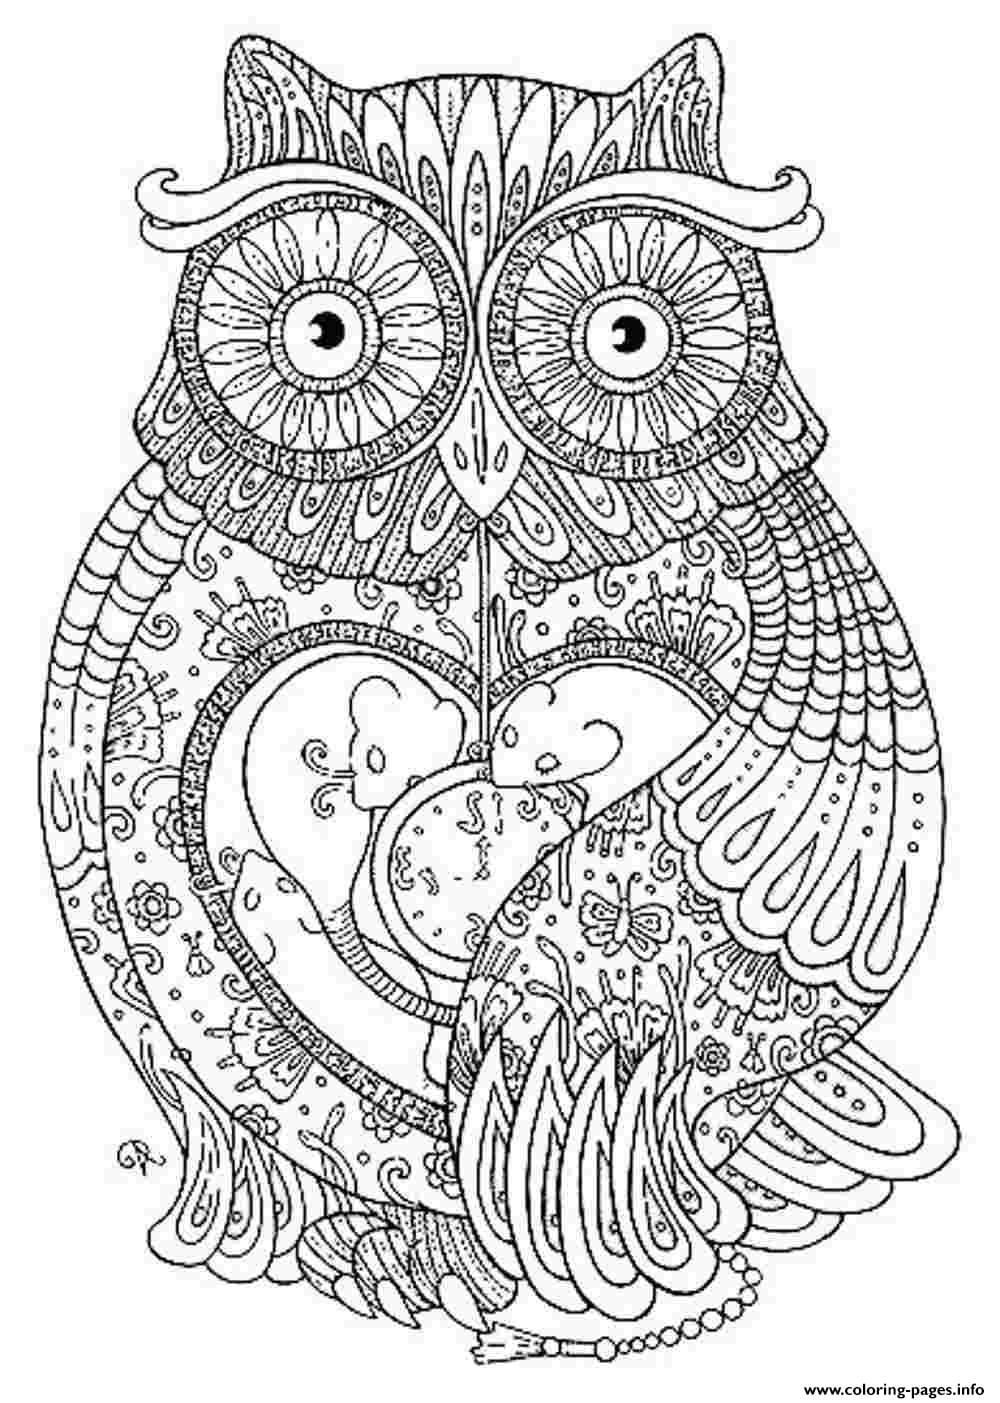 Print Animal Coloring Pages For Adults Coloring Pages